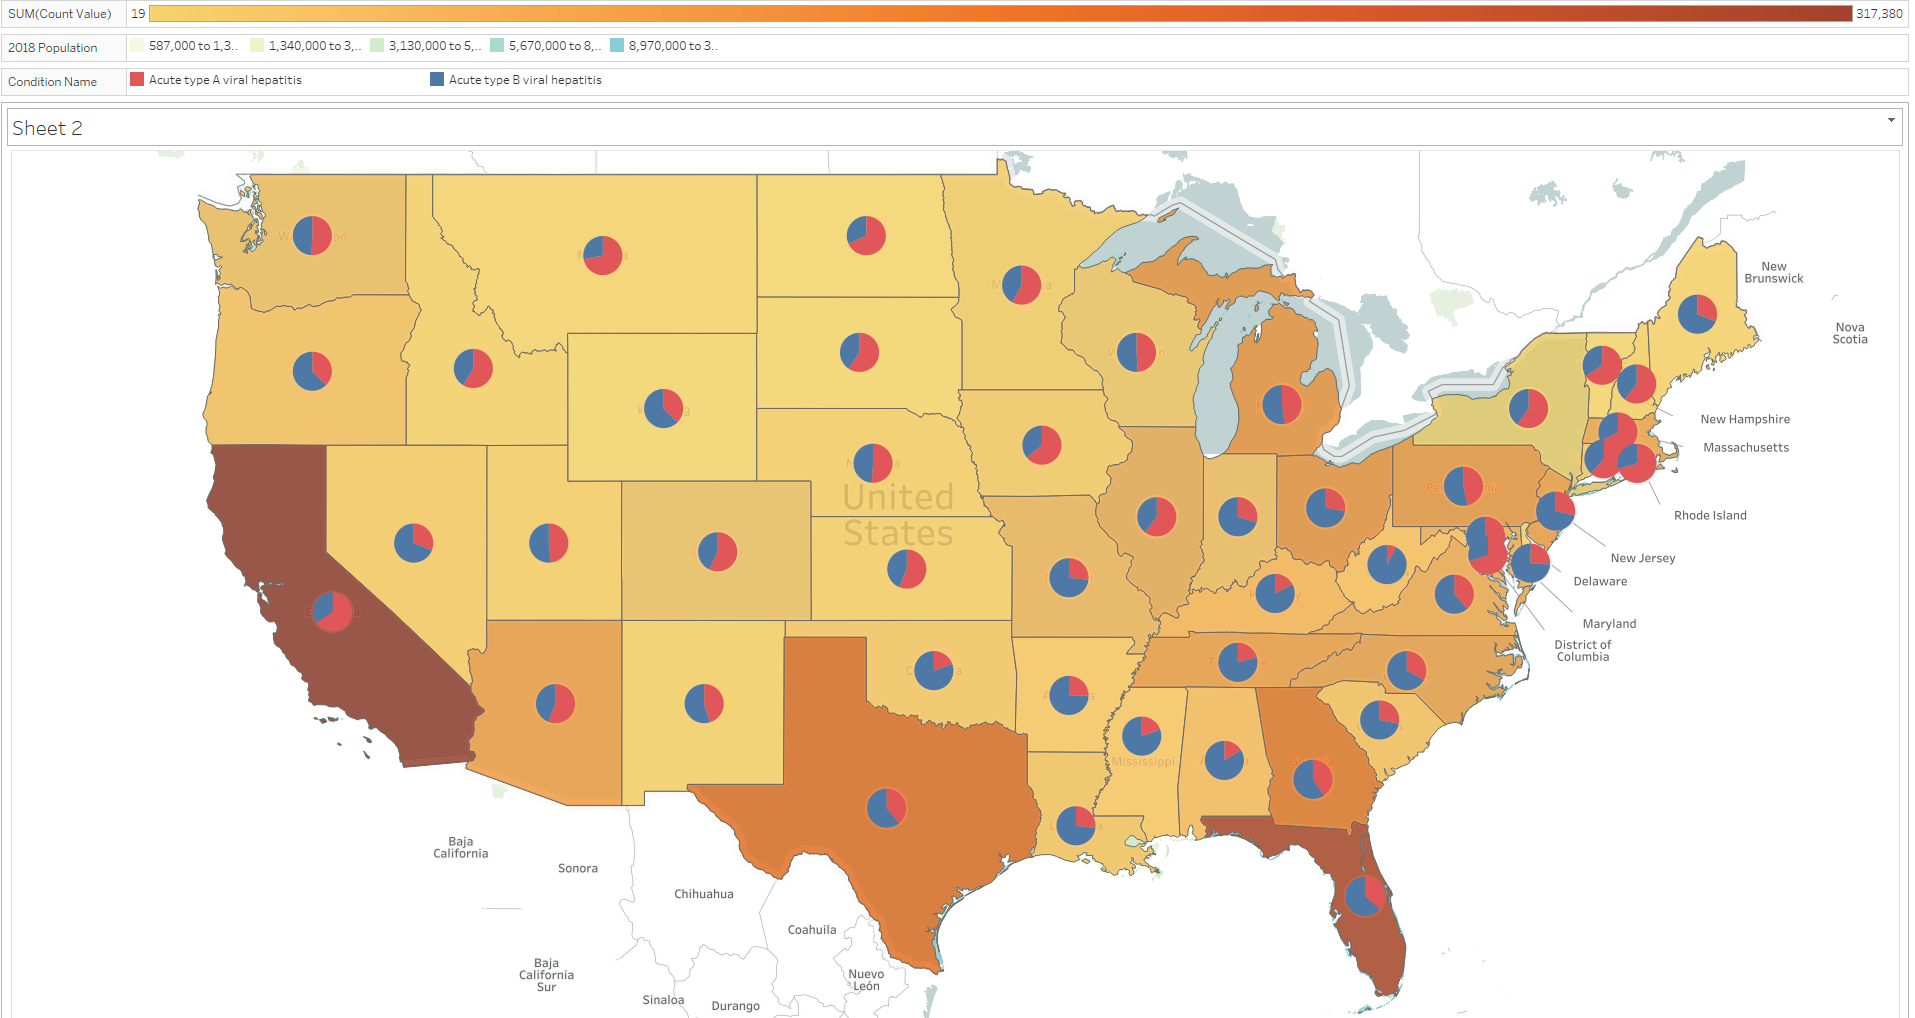 Pie Map Chart Acute A And B Viral Hepatitis In The Us Visual - Us-map-chart